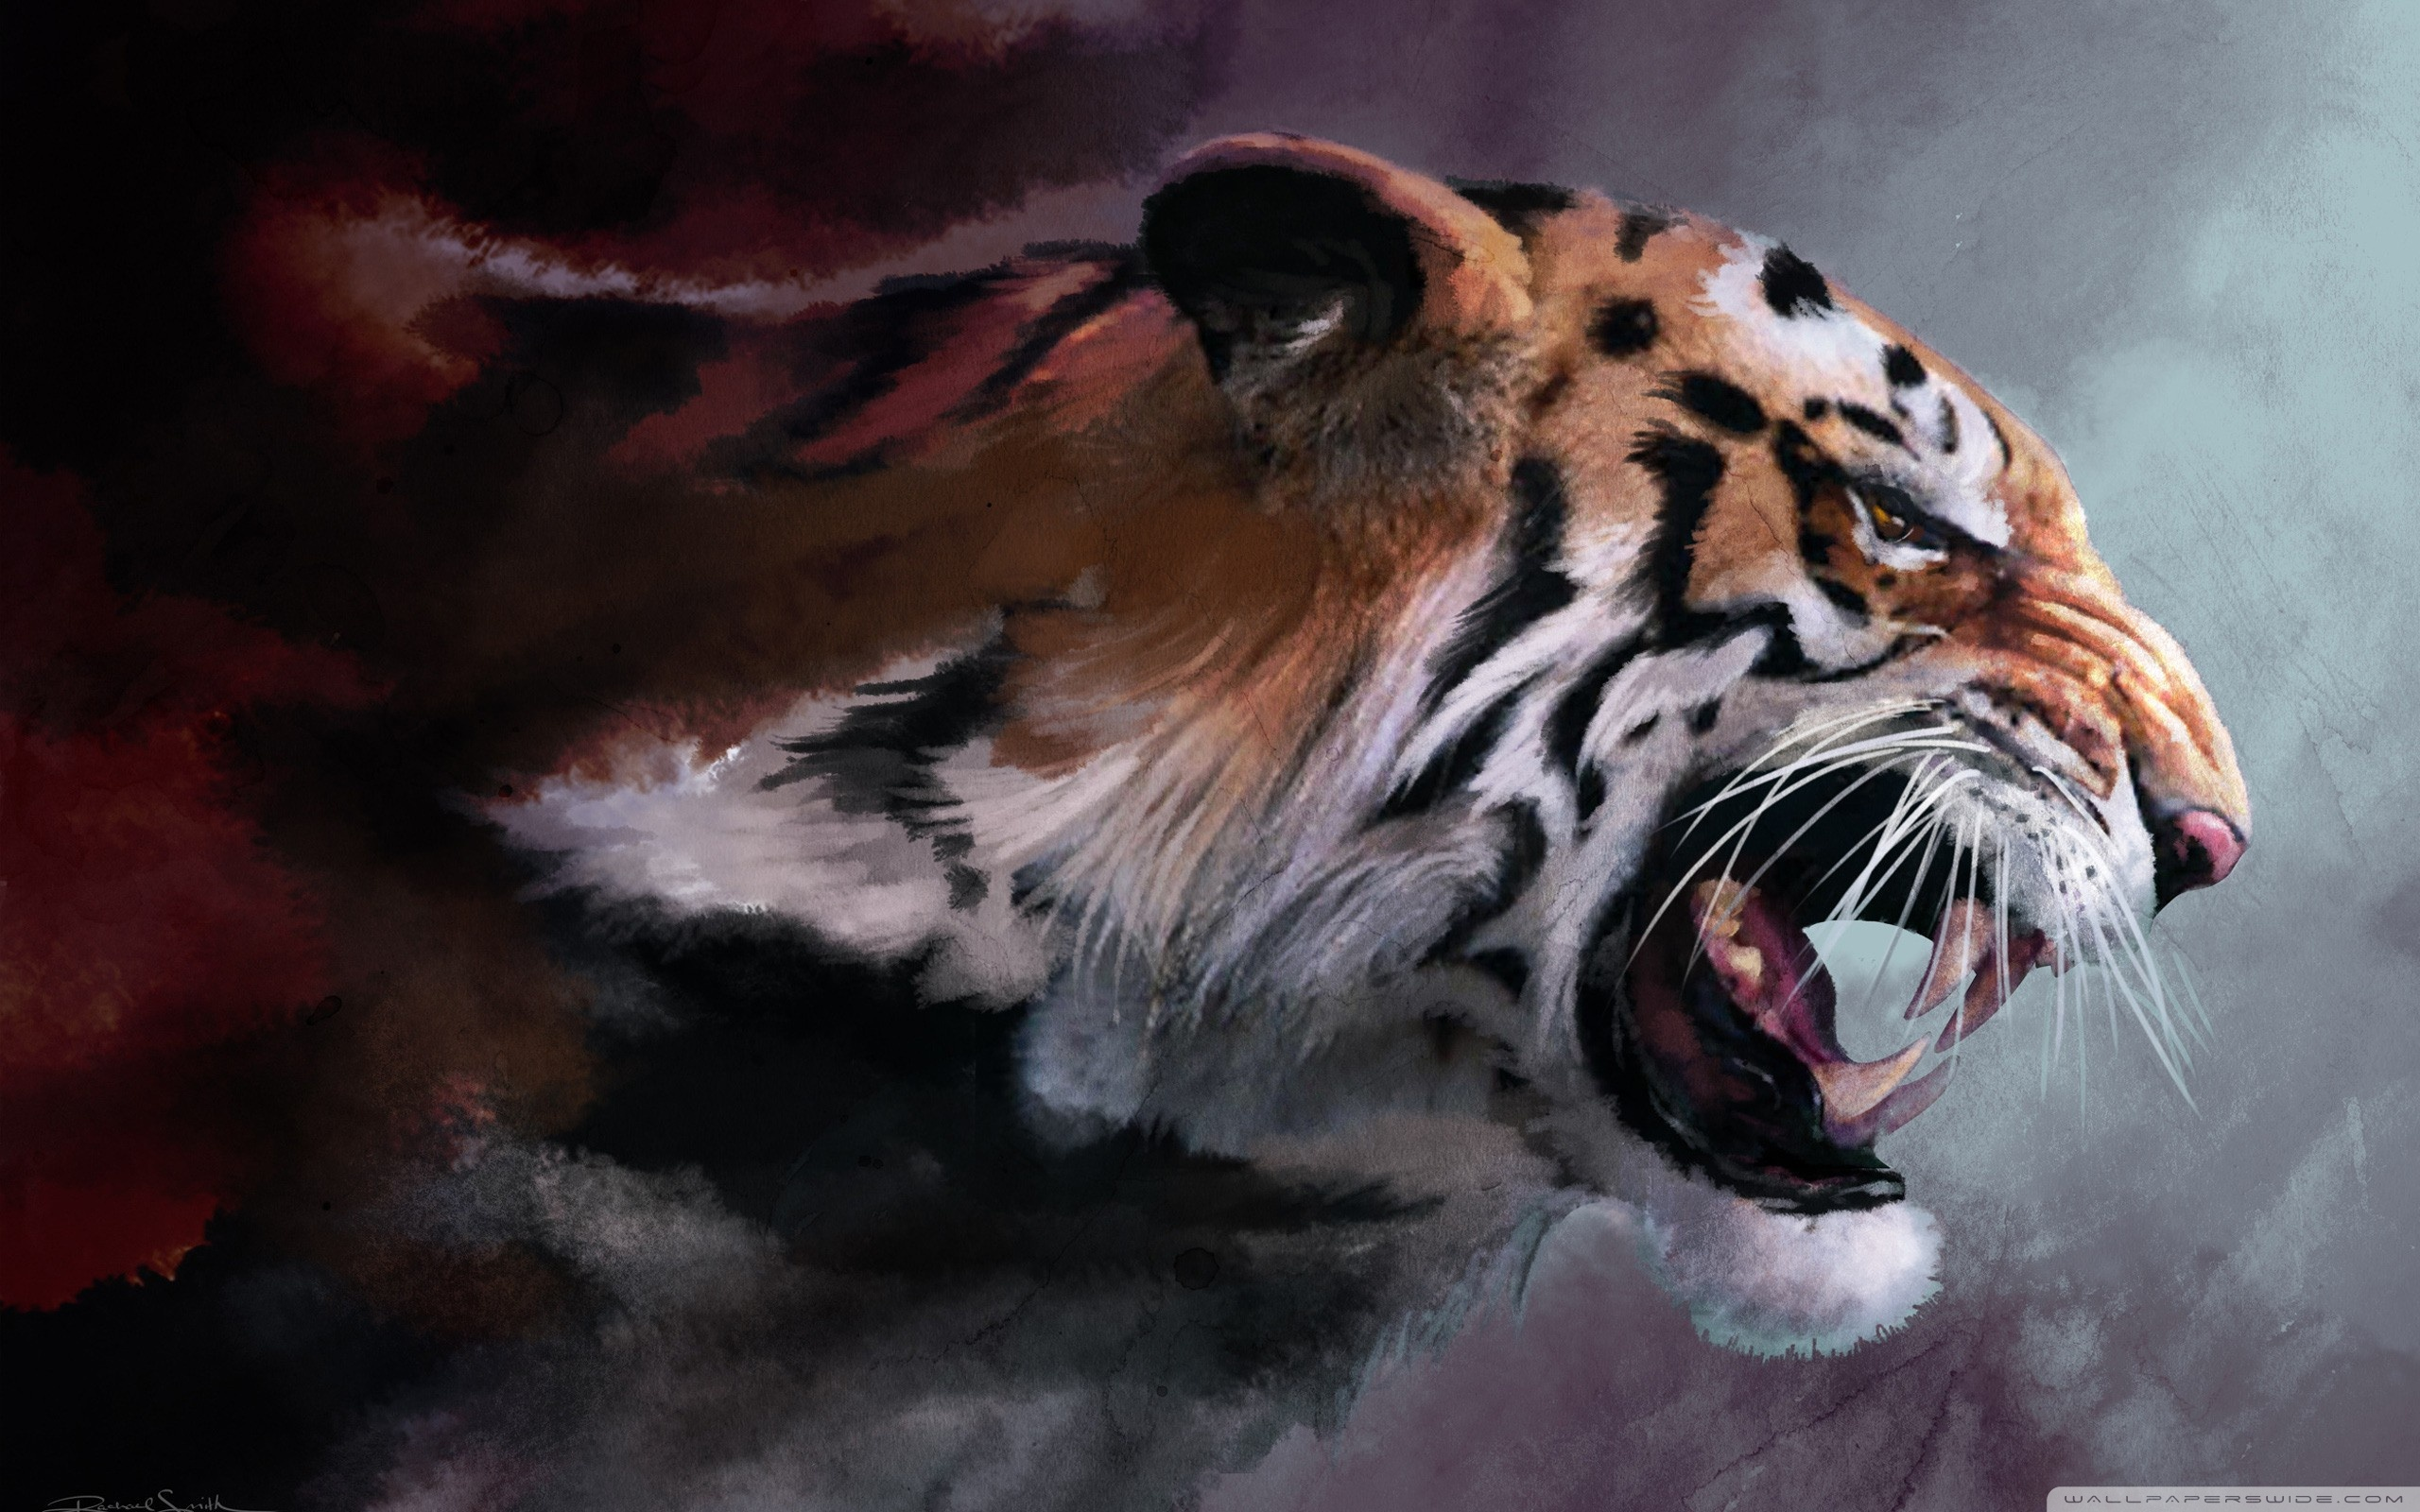 Angry Tiger Wallpaper 2560x1600 82369